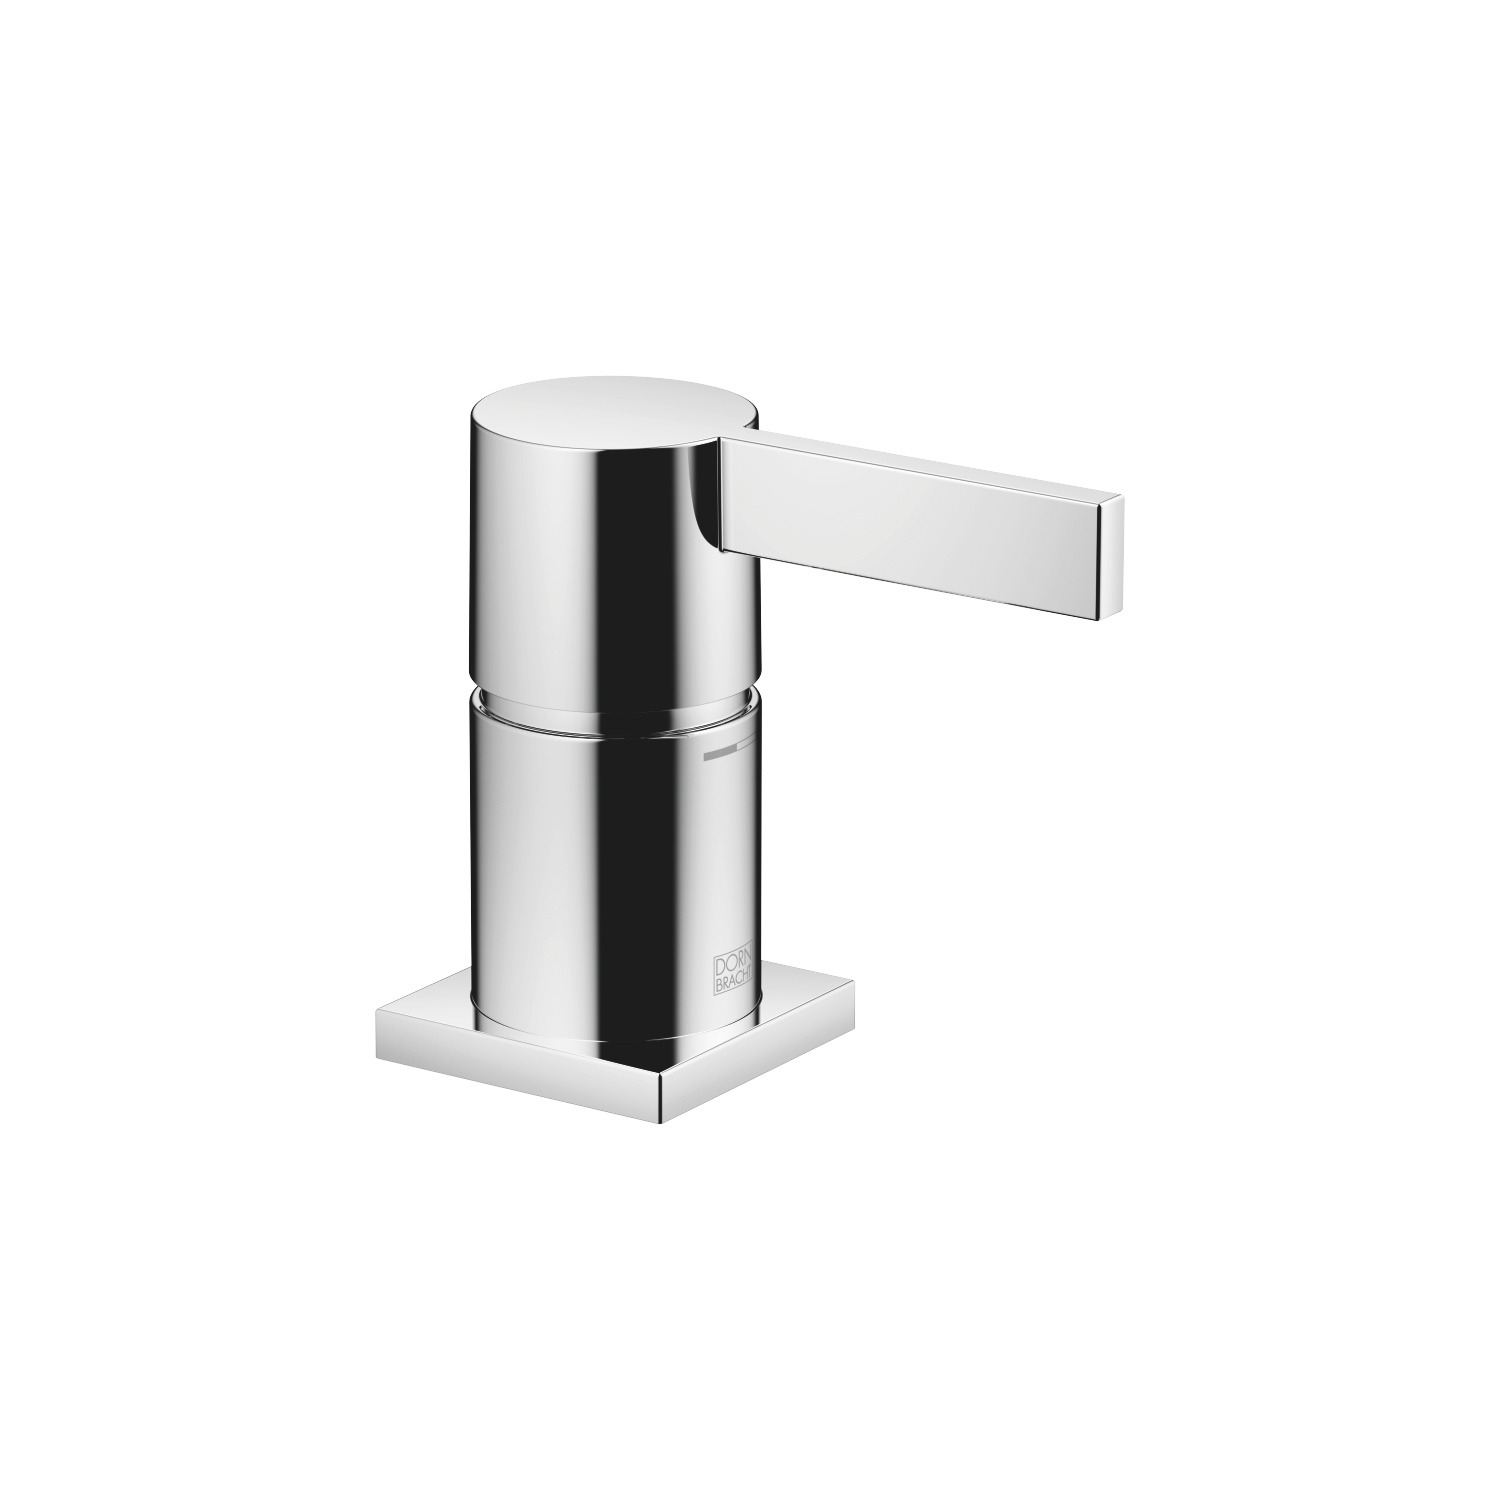 Single-lever bath mixer for bath rim or tile edge installation - polished chrome - 29 300 670-00